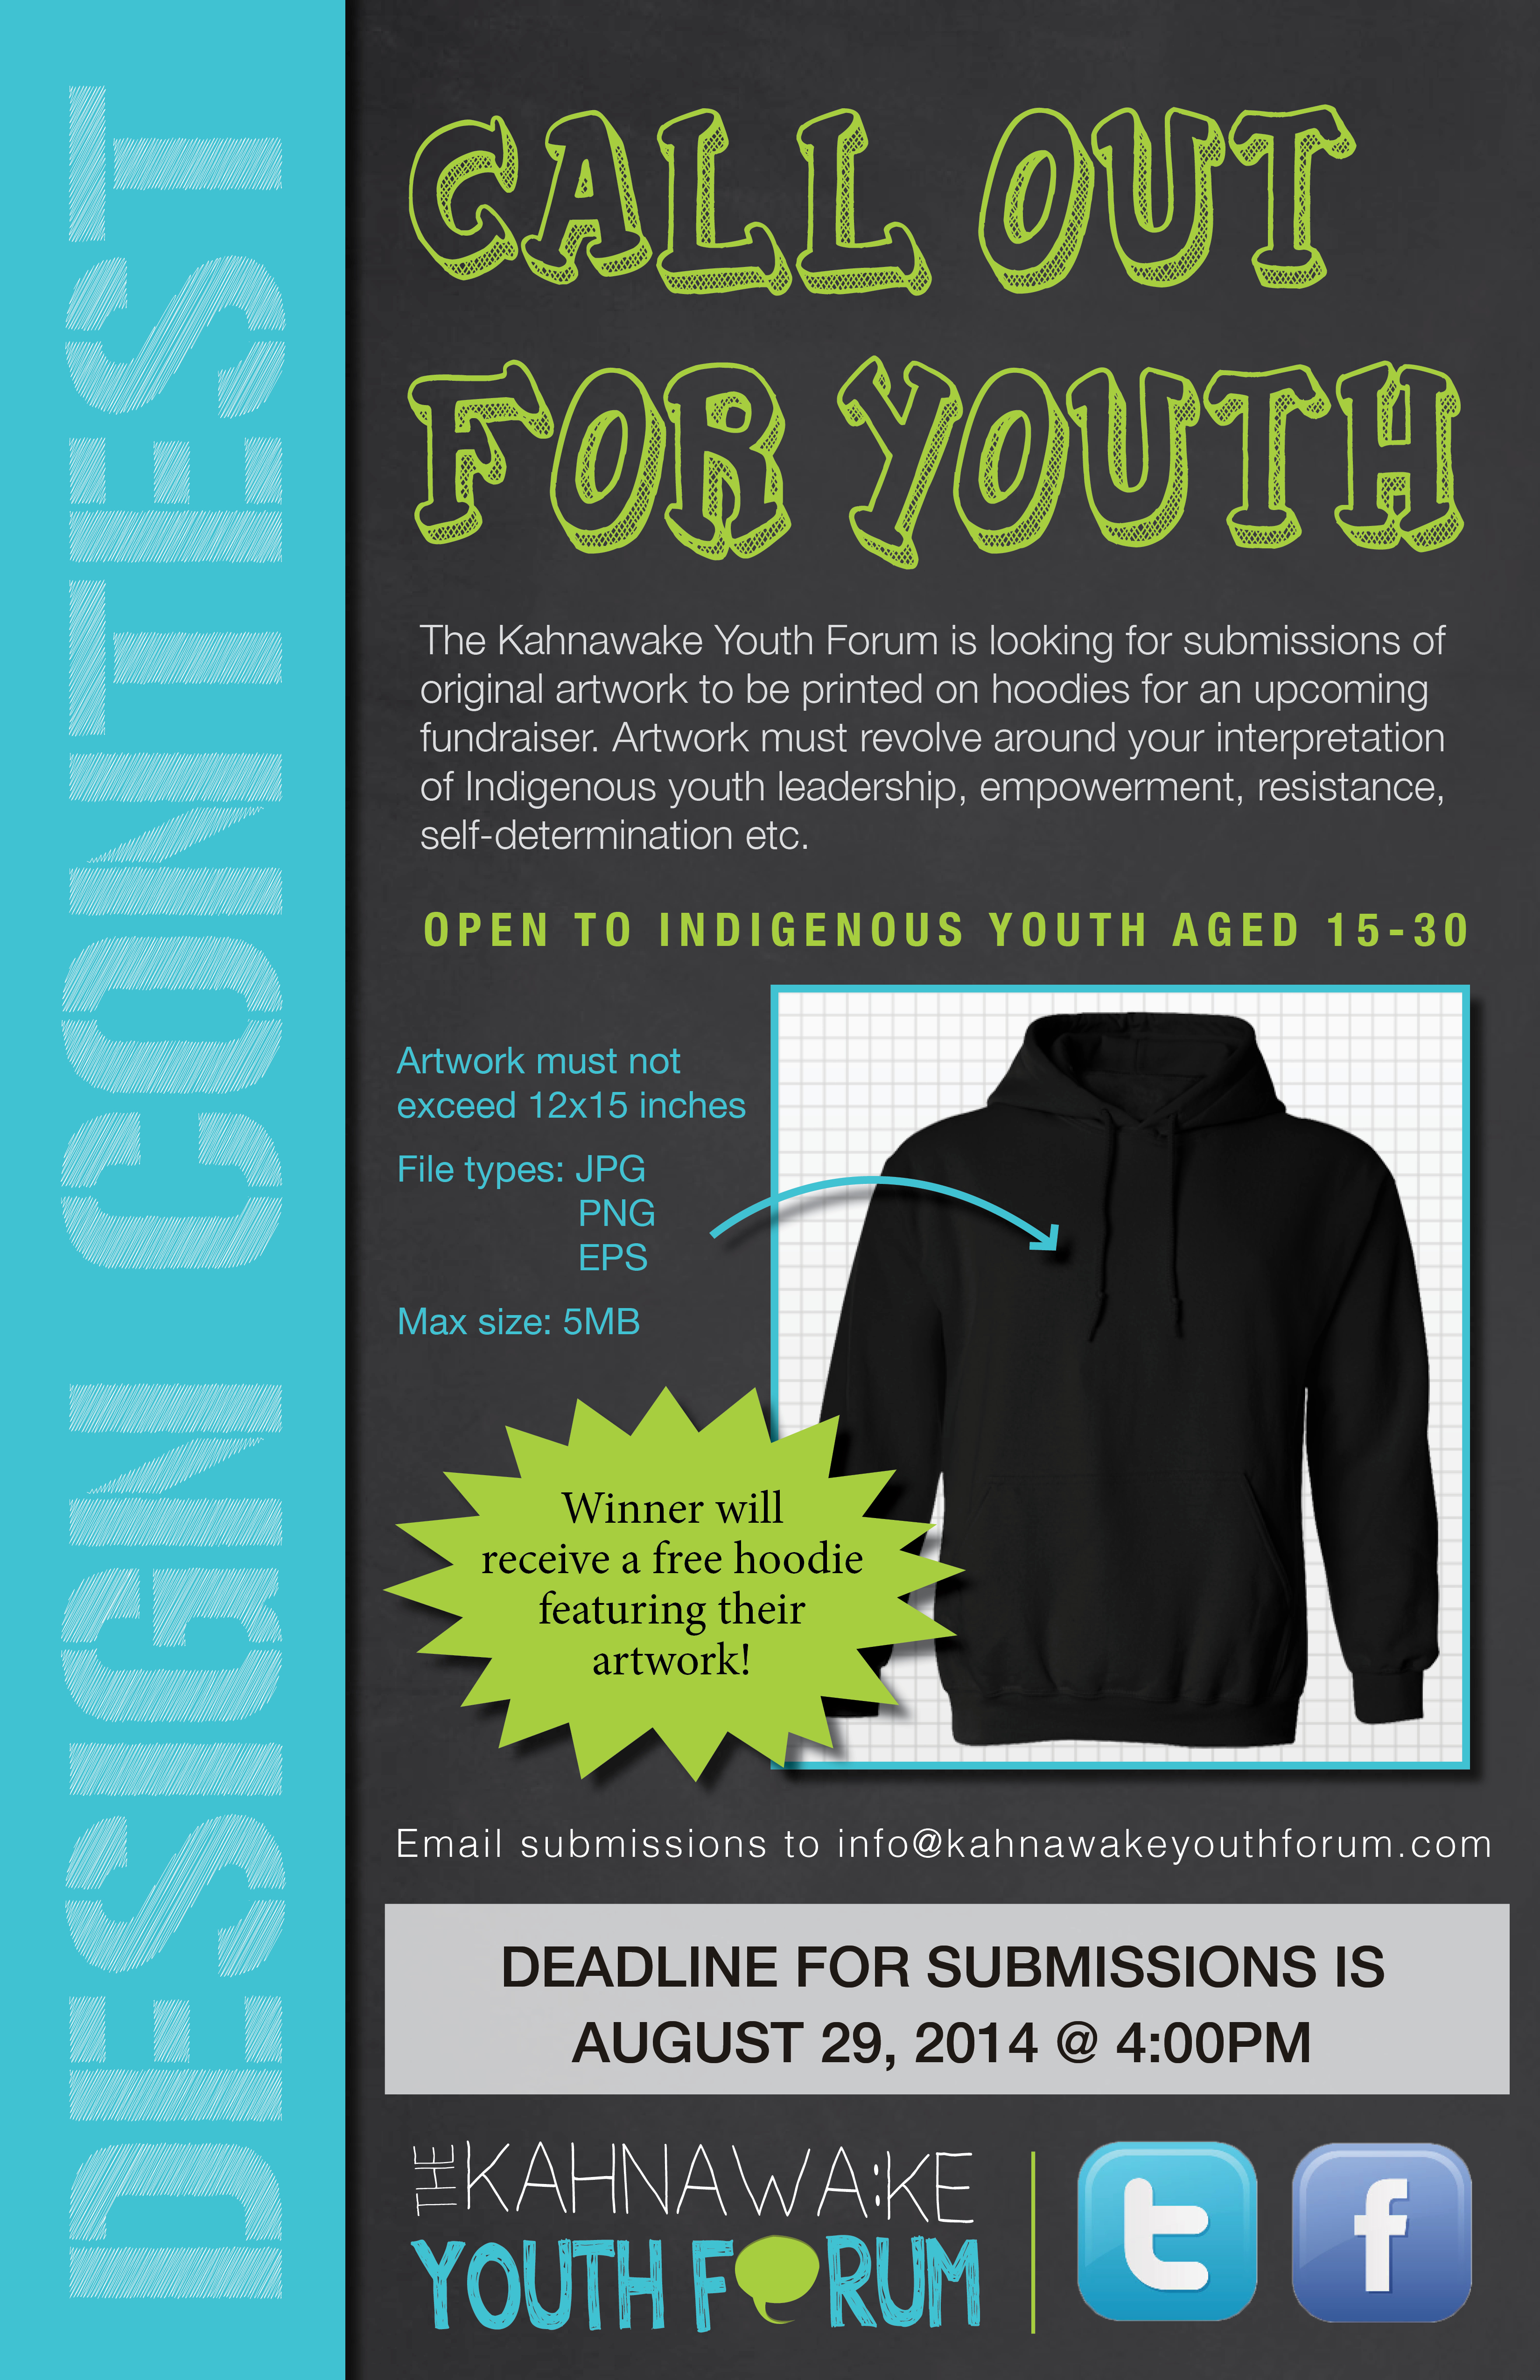 Design Contest: Call out for youth